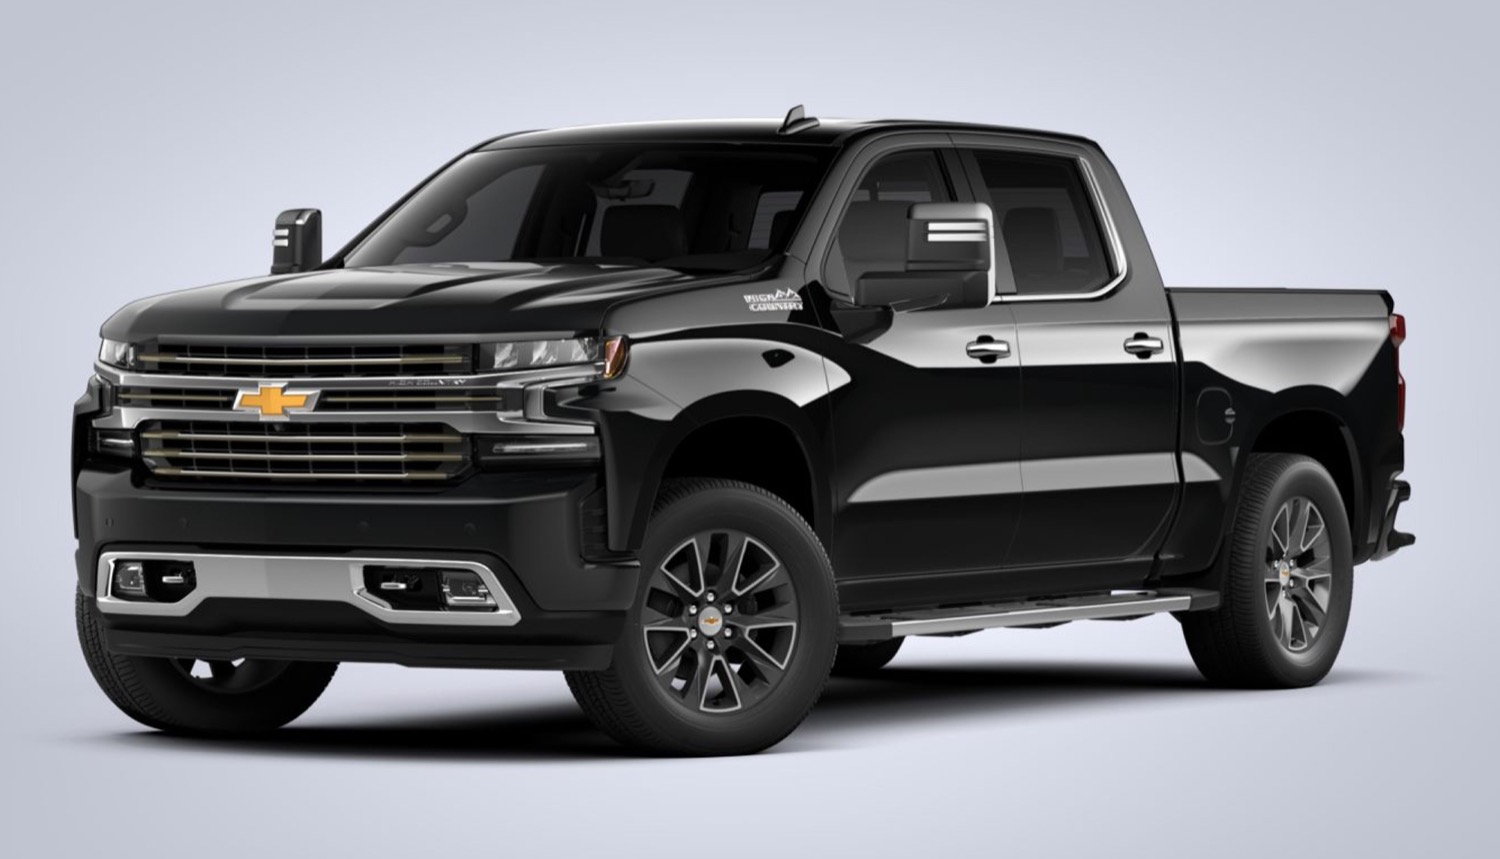 Here Are The Optional 2020 Silverado 1500 Towing Mirrors 2022 Buick Verano Upgrades, Towing Capacity, Ground Clearance